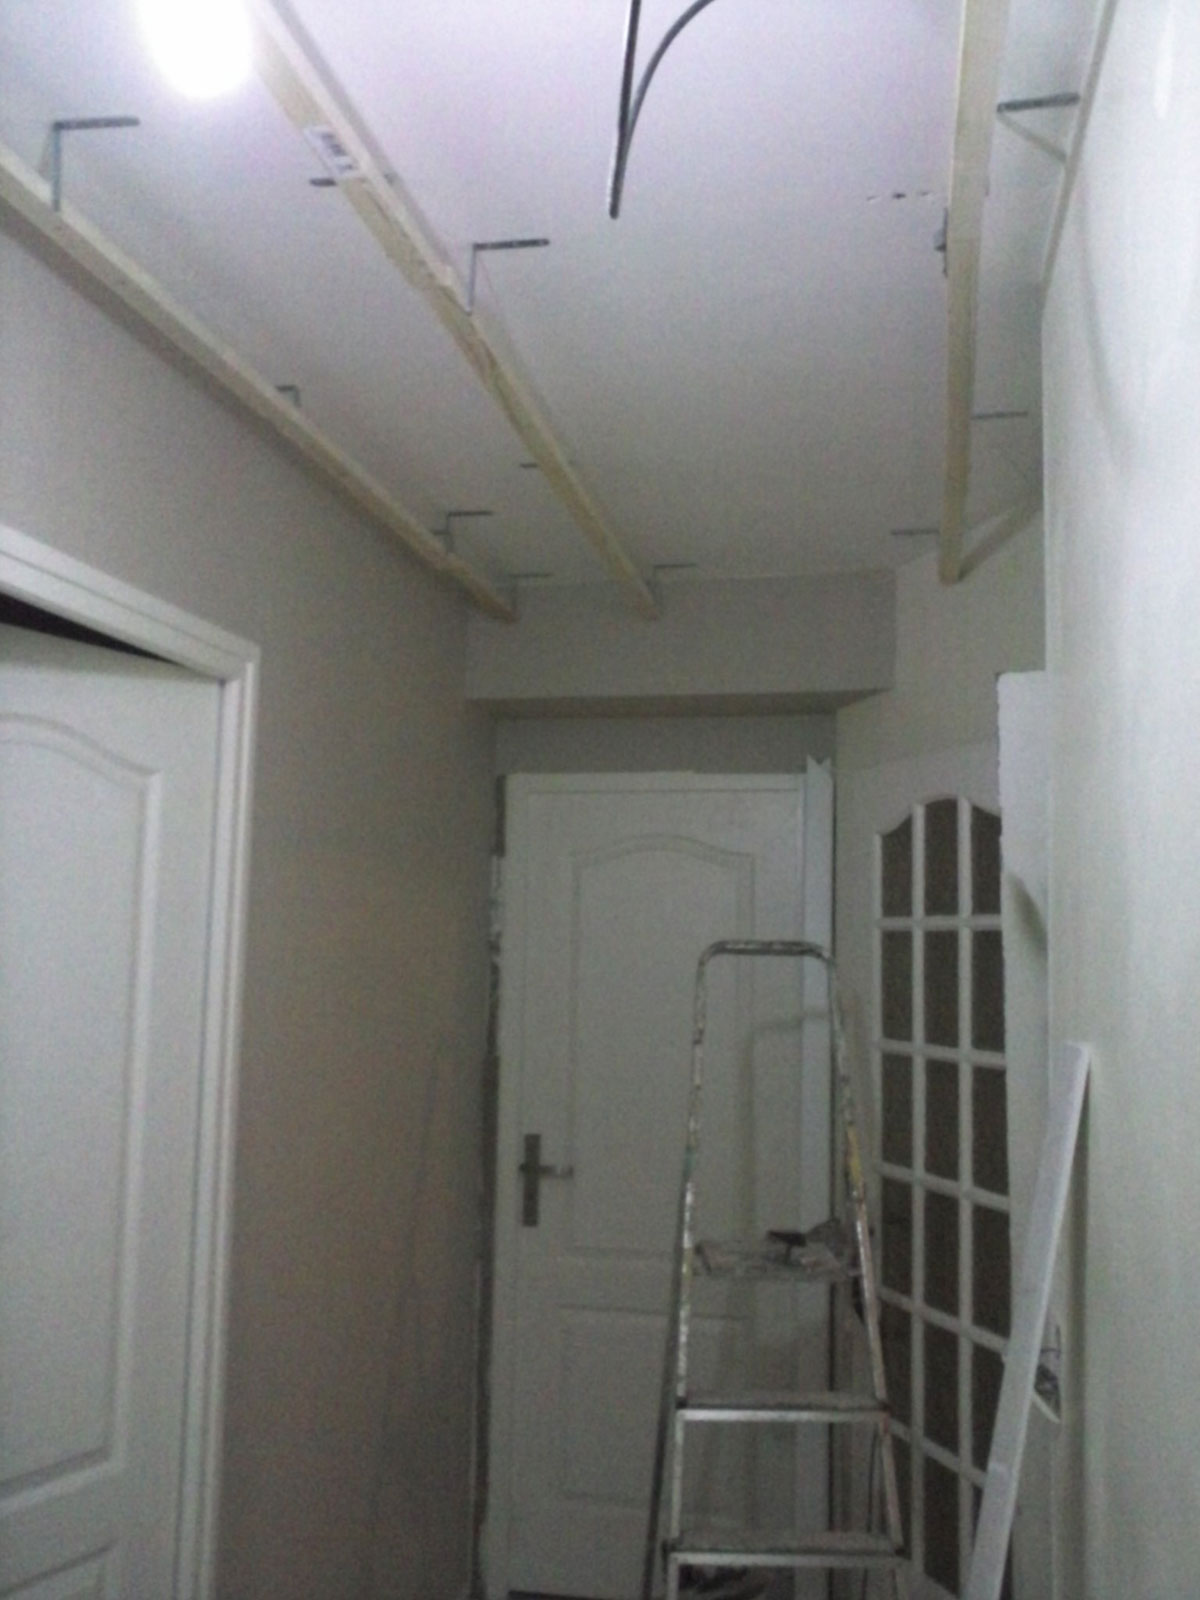 R novation de ma maison transformation d 39 un couloir for Peindre sur platre